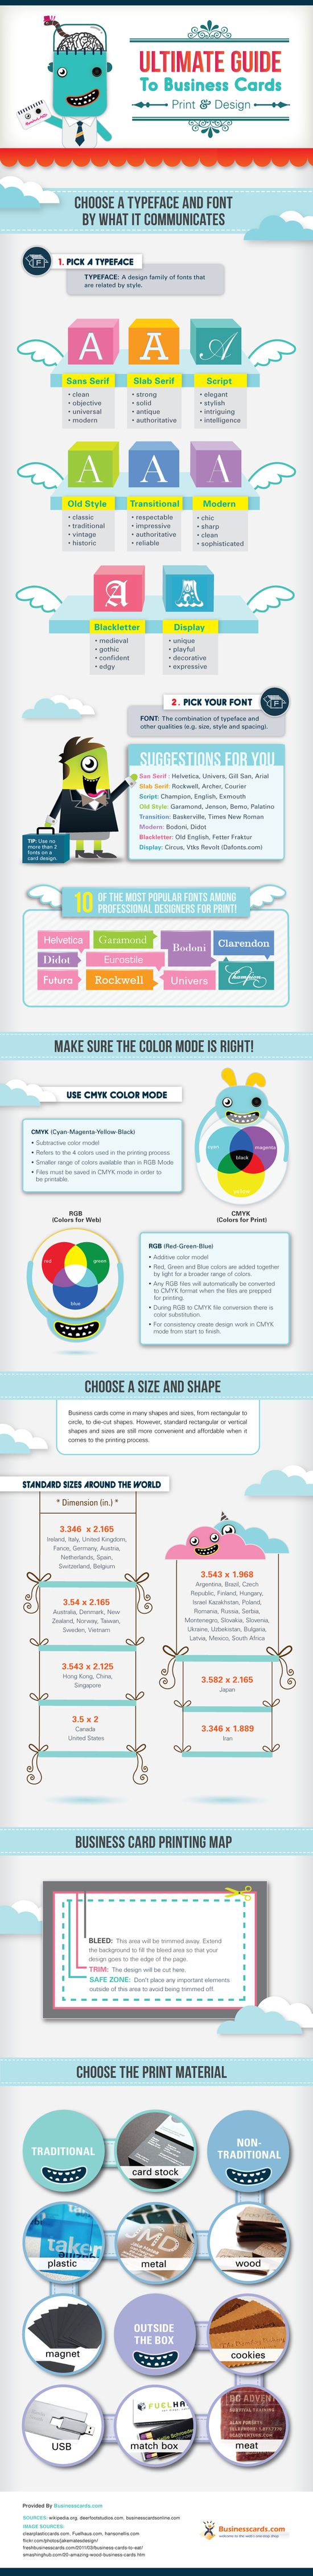 business card infographic